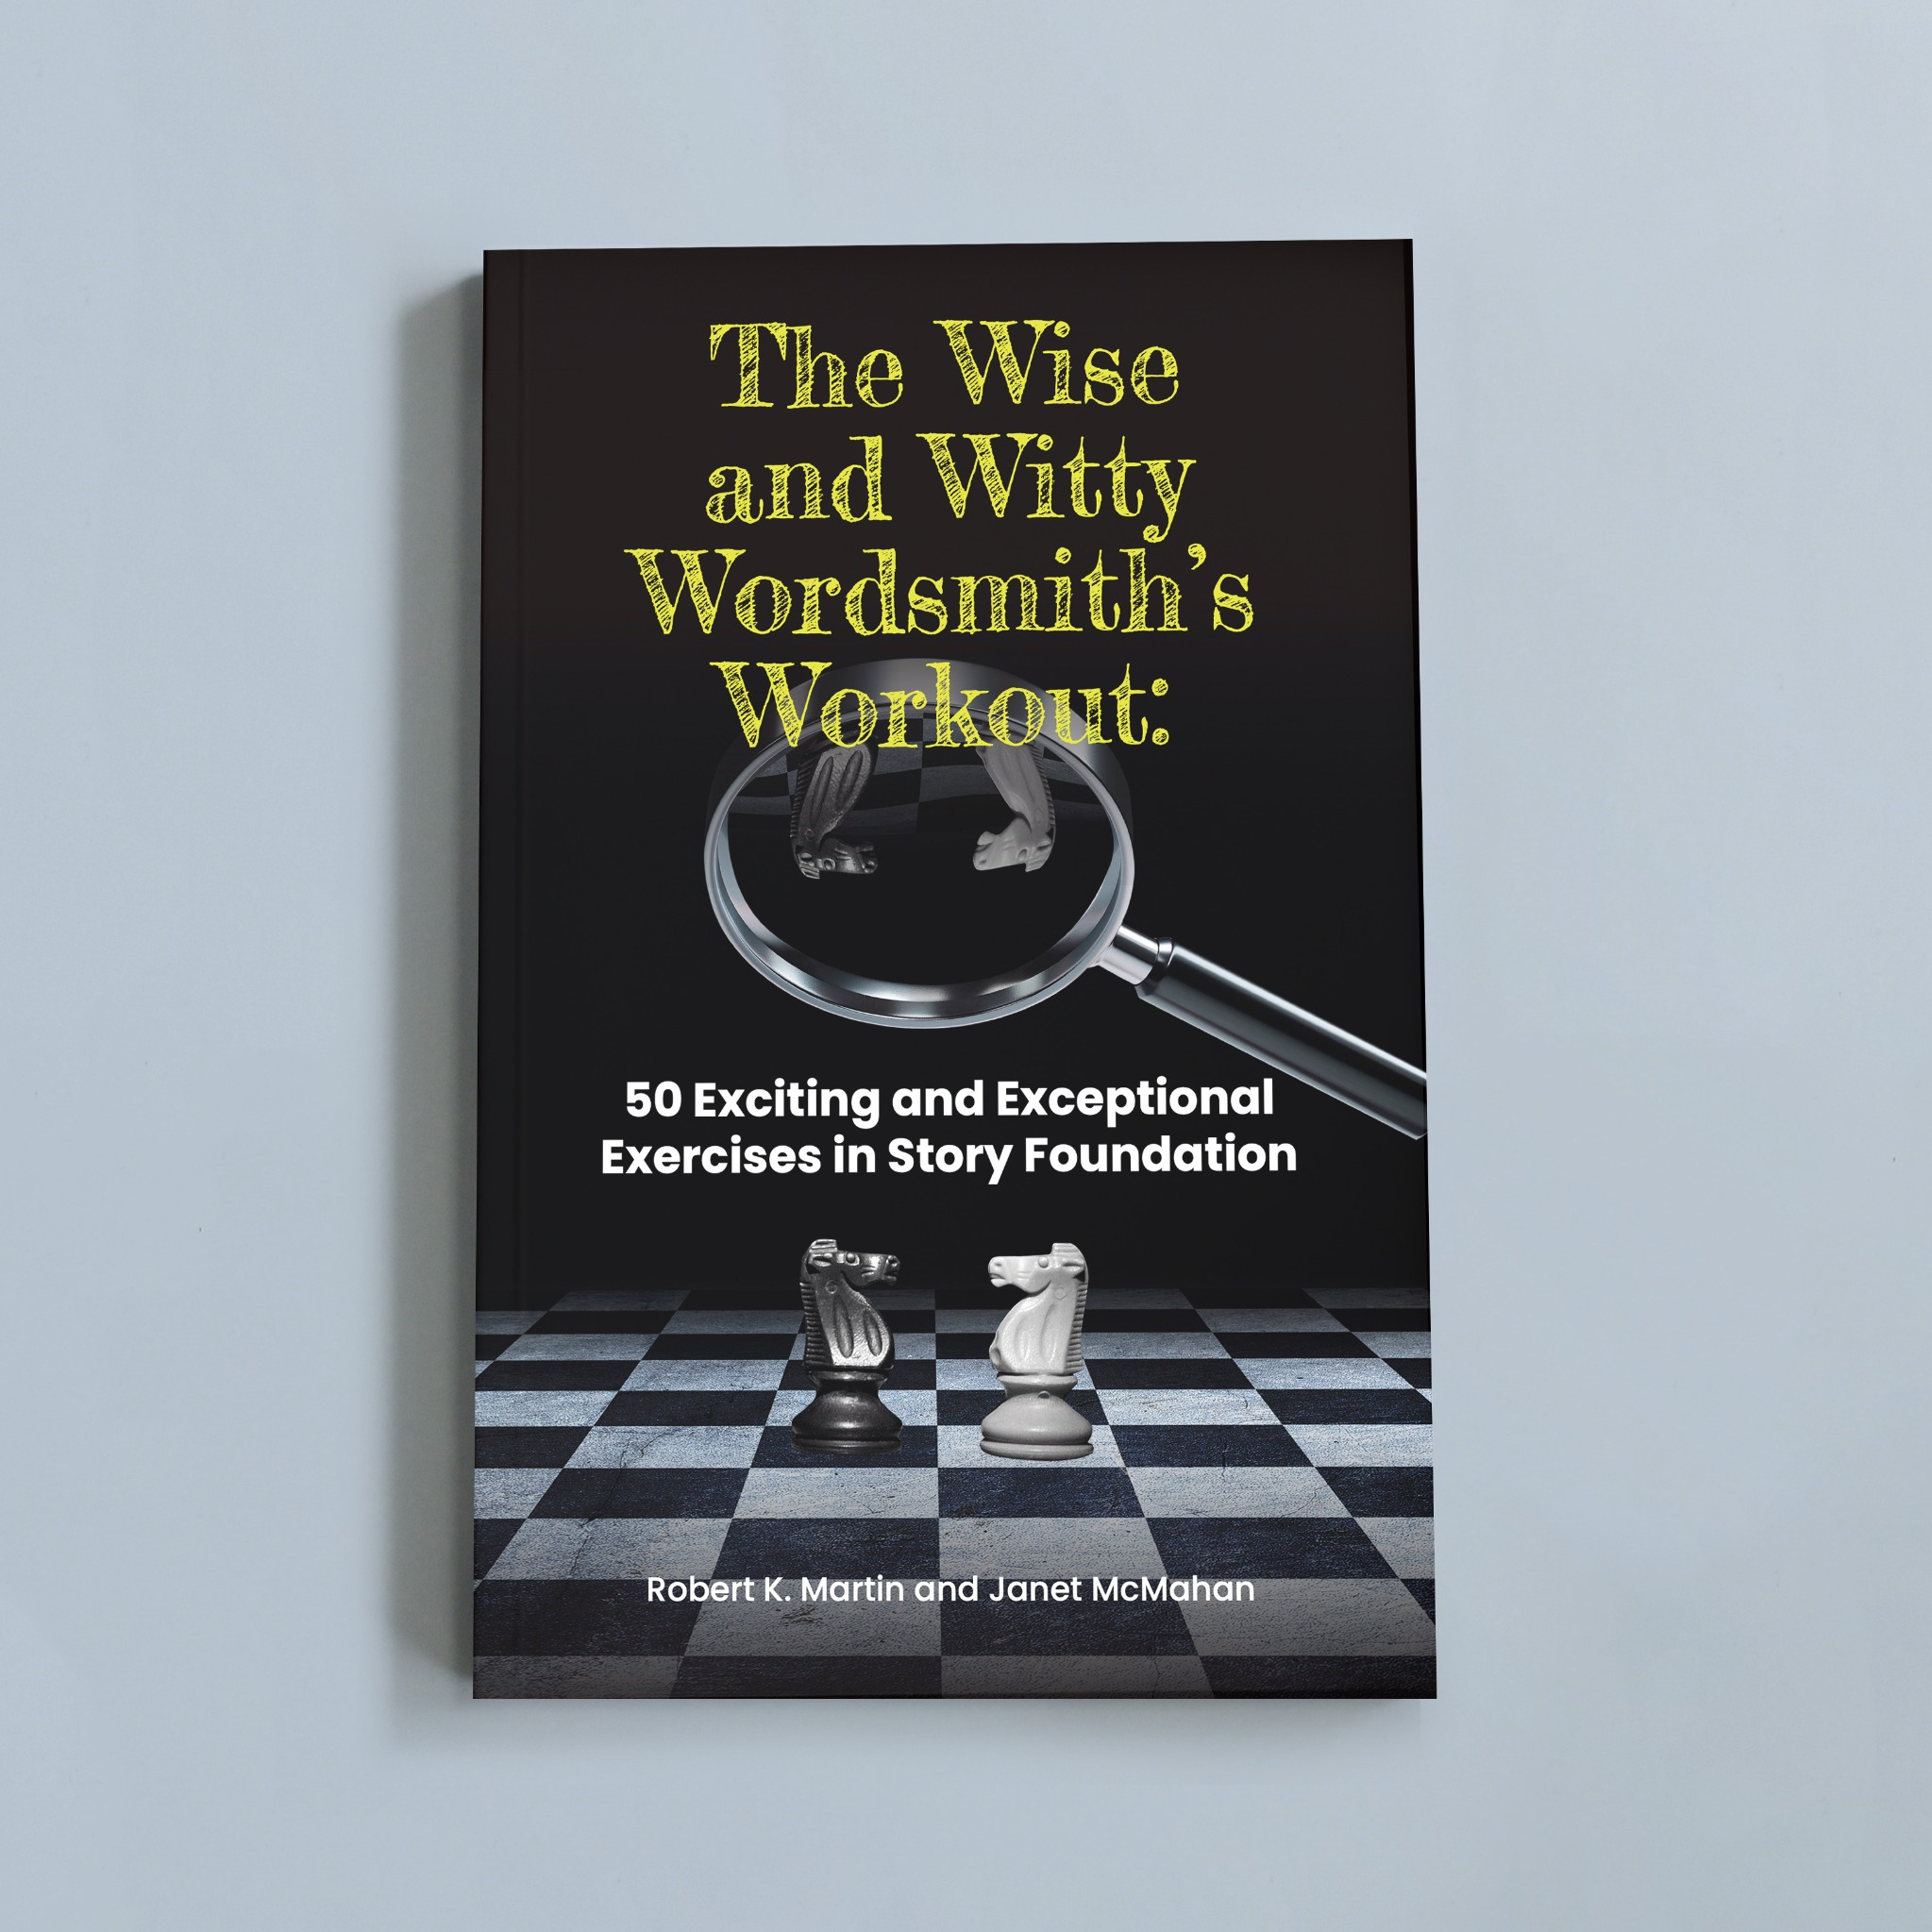 The Wise and Witty Wordsmith's Workout: 50 Exciting and Exceptional Exercises in Story Foundation